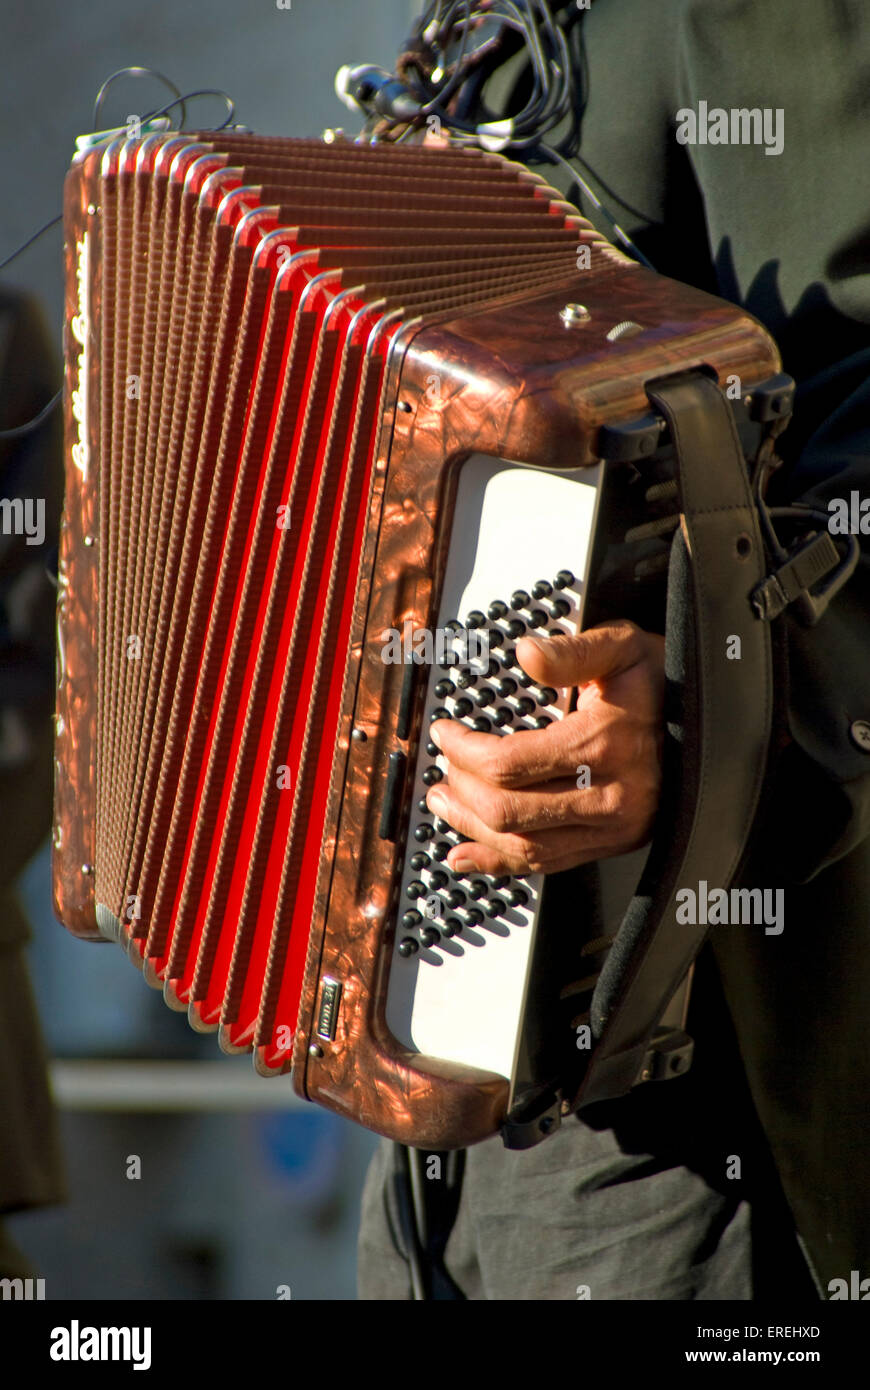 Close-up of accordionist's left hand on buttons, of piano accordion. - Stock Image